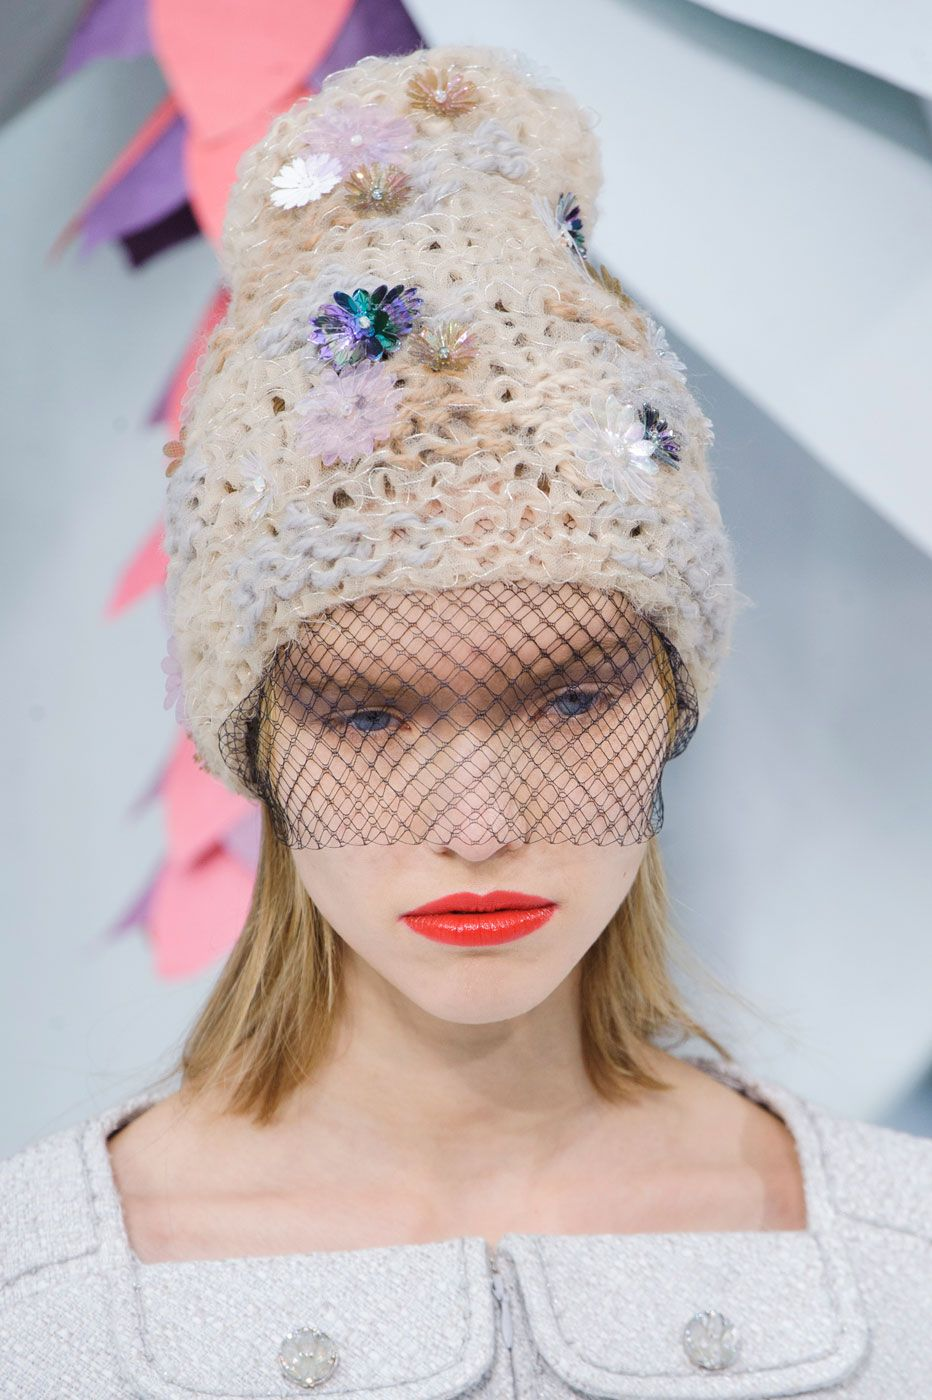 The Best Haute Couture Beauty Looks From Spring 2015  - ELLE.com